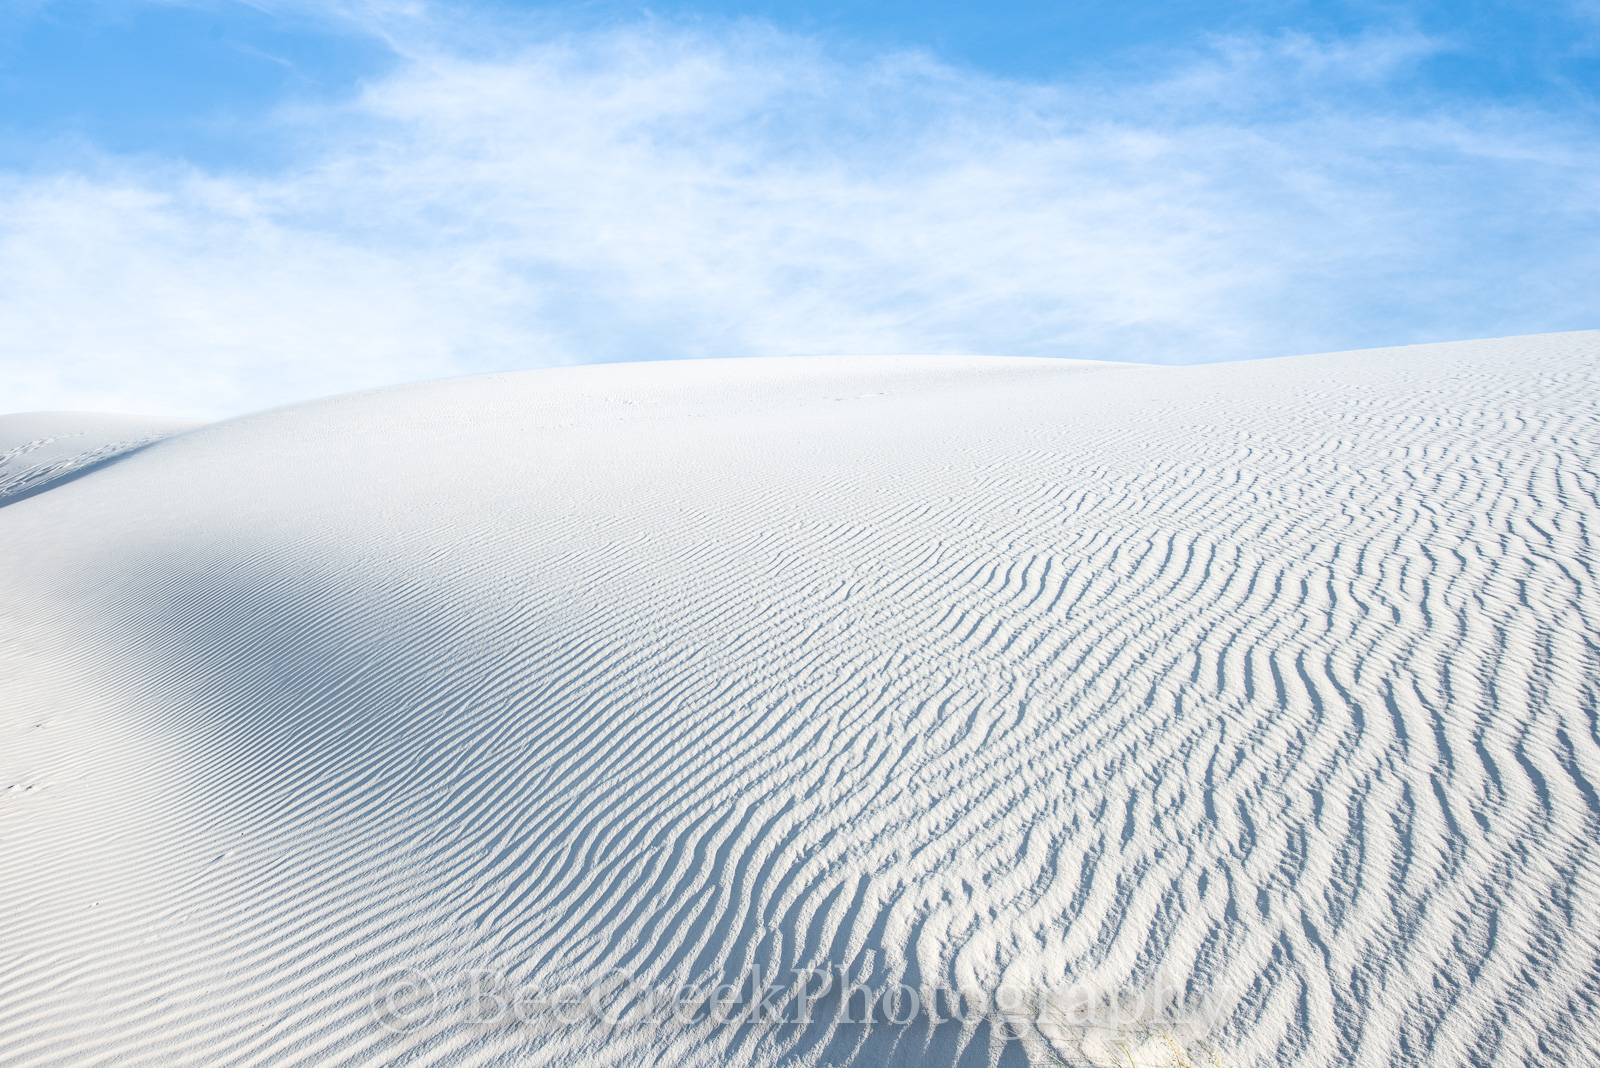 White Sands, landscapes, desert southwest, White Sand National Monument nm, New Mexico, New Mexico Parks, White , beautiful photos of white sands, dunes, endless sand dunes in White Sands, flow of san, photo